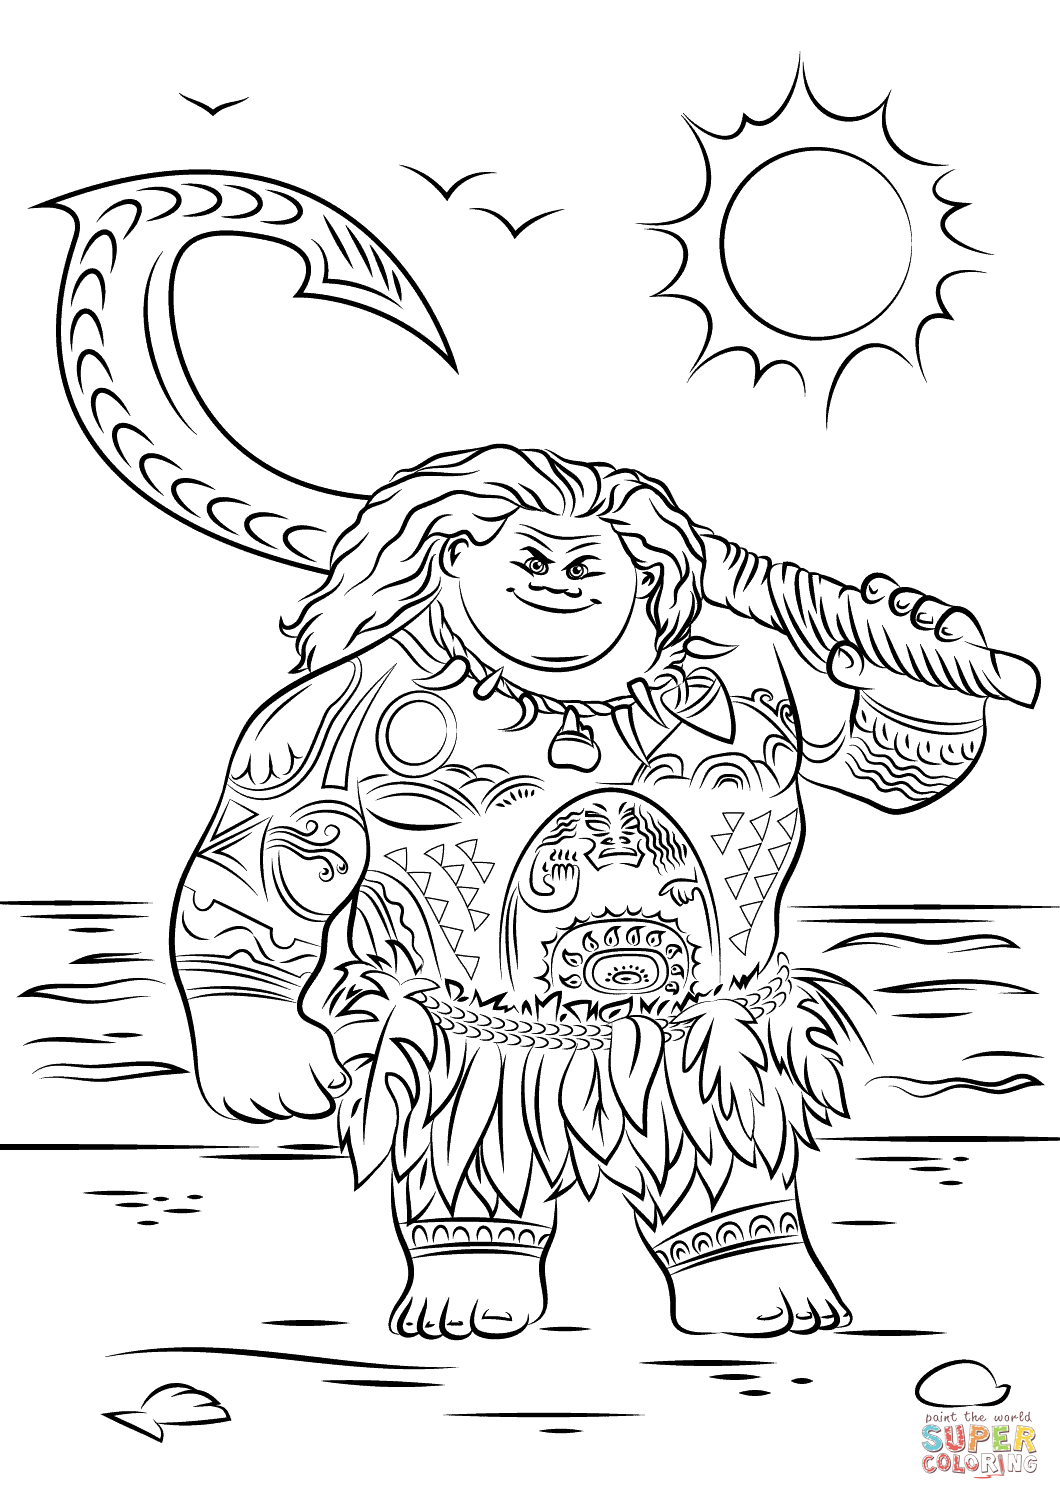 Maui from Moana coloring page | Free Printable Coloring Pages